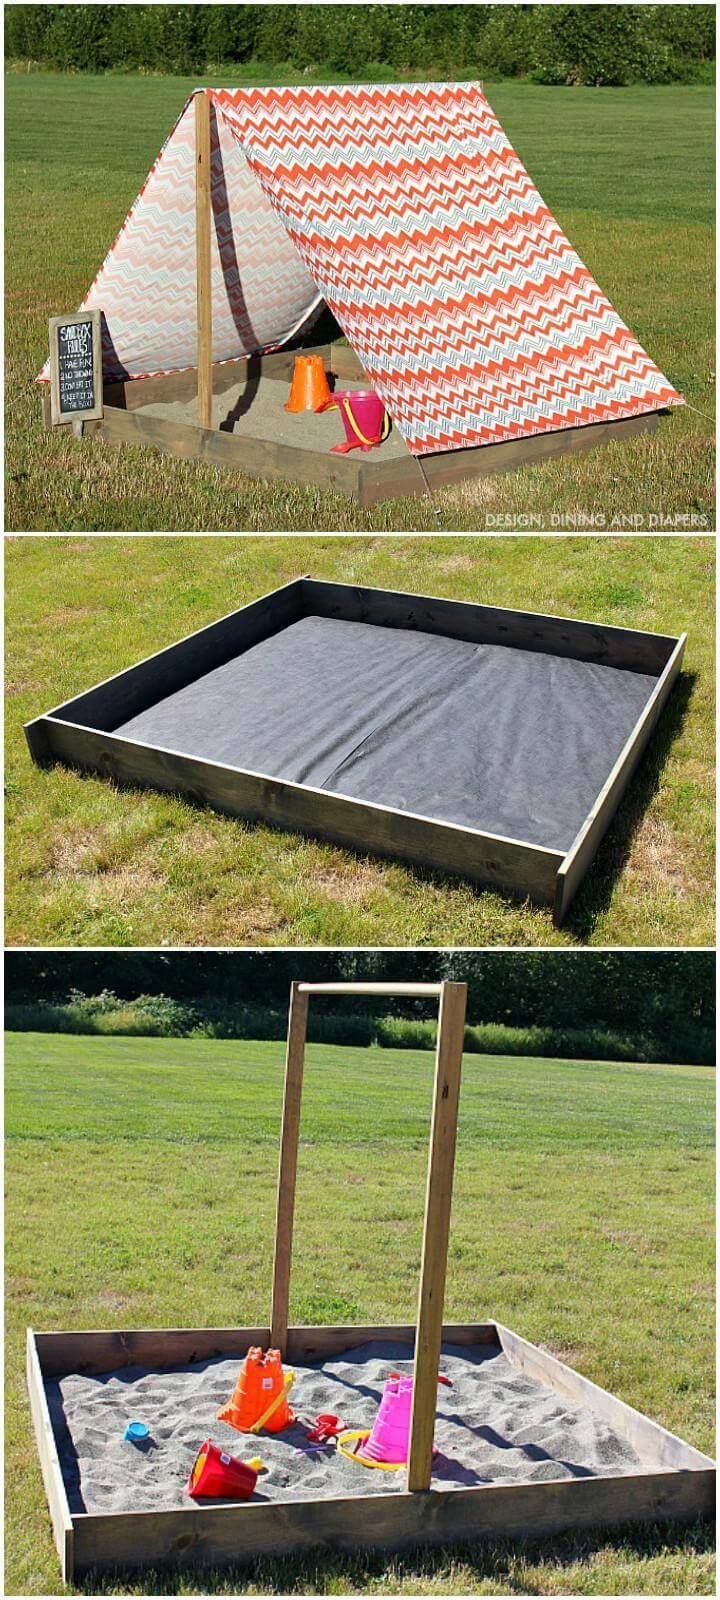 60 diy sandbox ideas and projects for kids page 4 of 10 diy